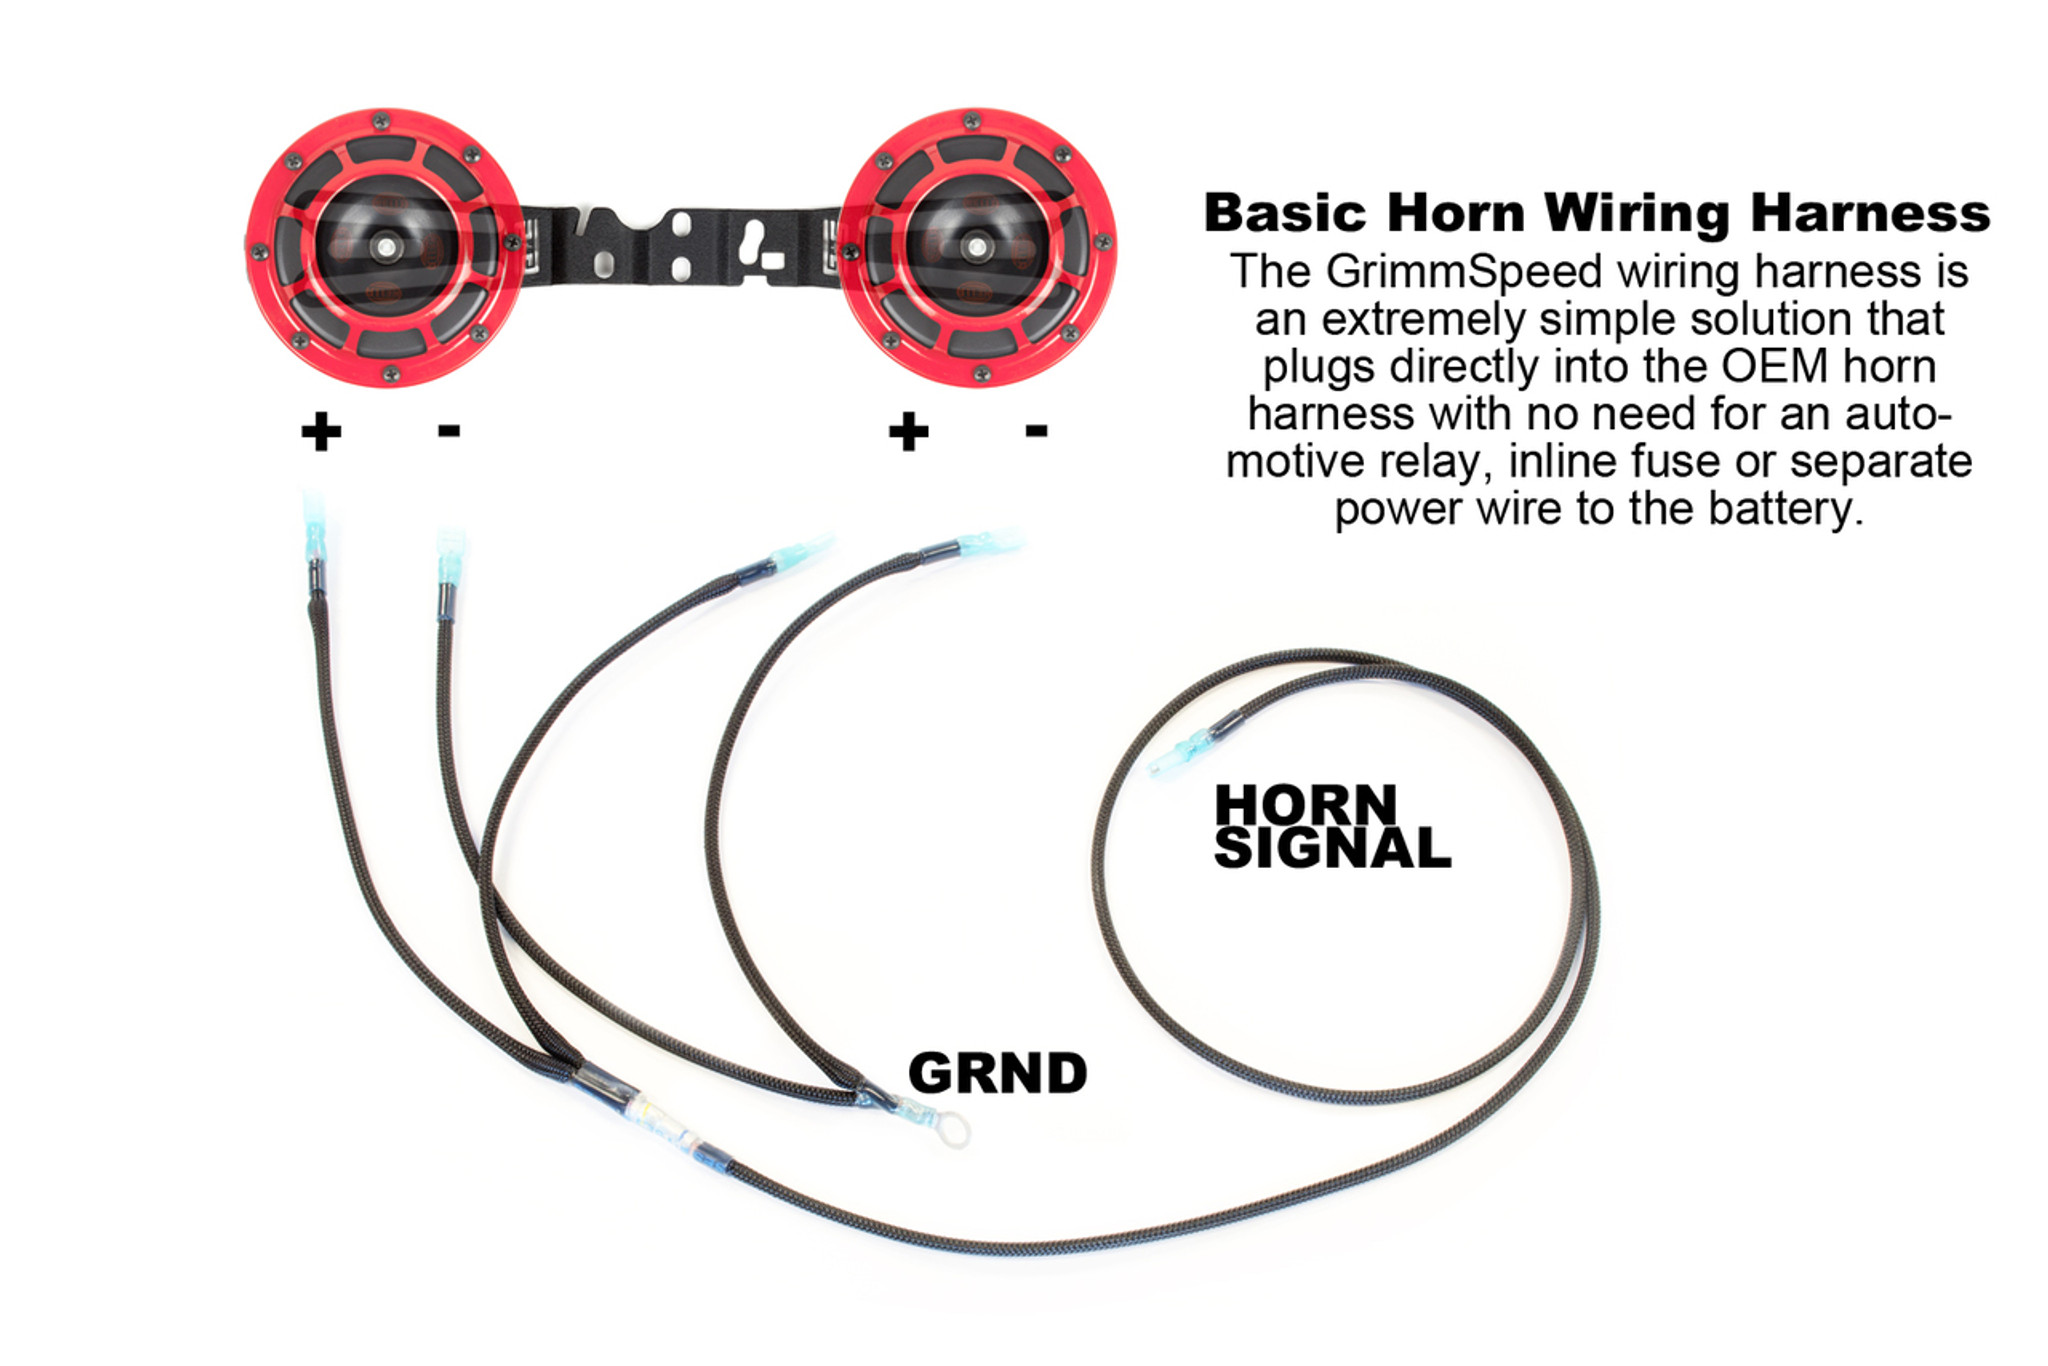 hella horn wiring harness 02 14 wrx 04 14 sti grimmspeed rh grimmspeed com 5 Pin Relay Wiring Diagram Jeep Fog Light Wiring Diagram